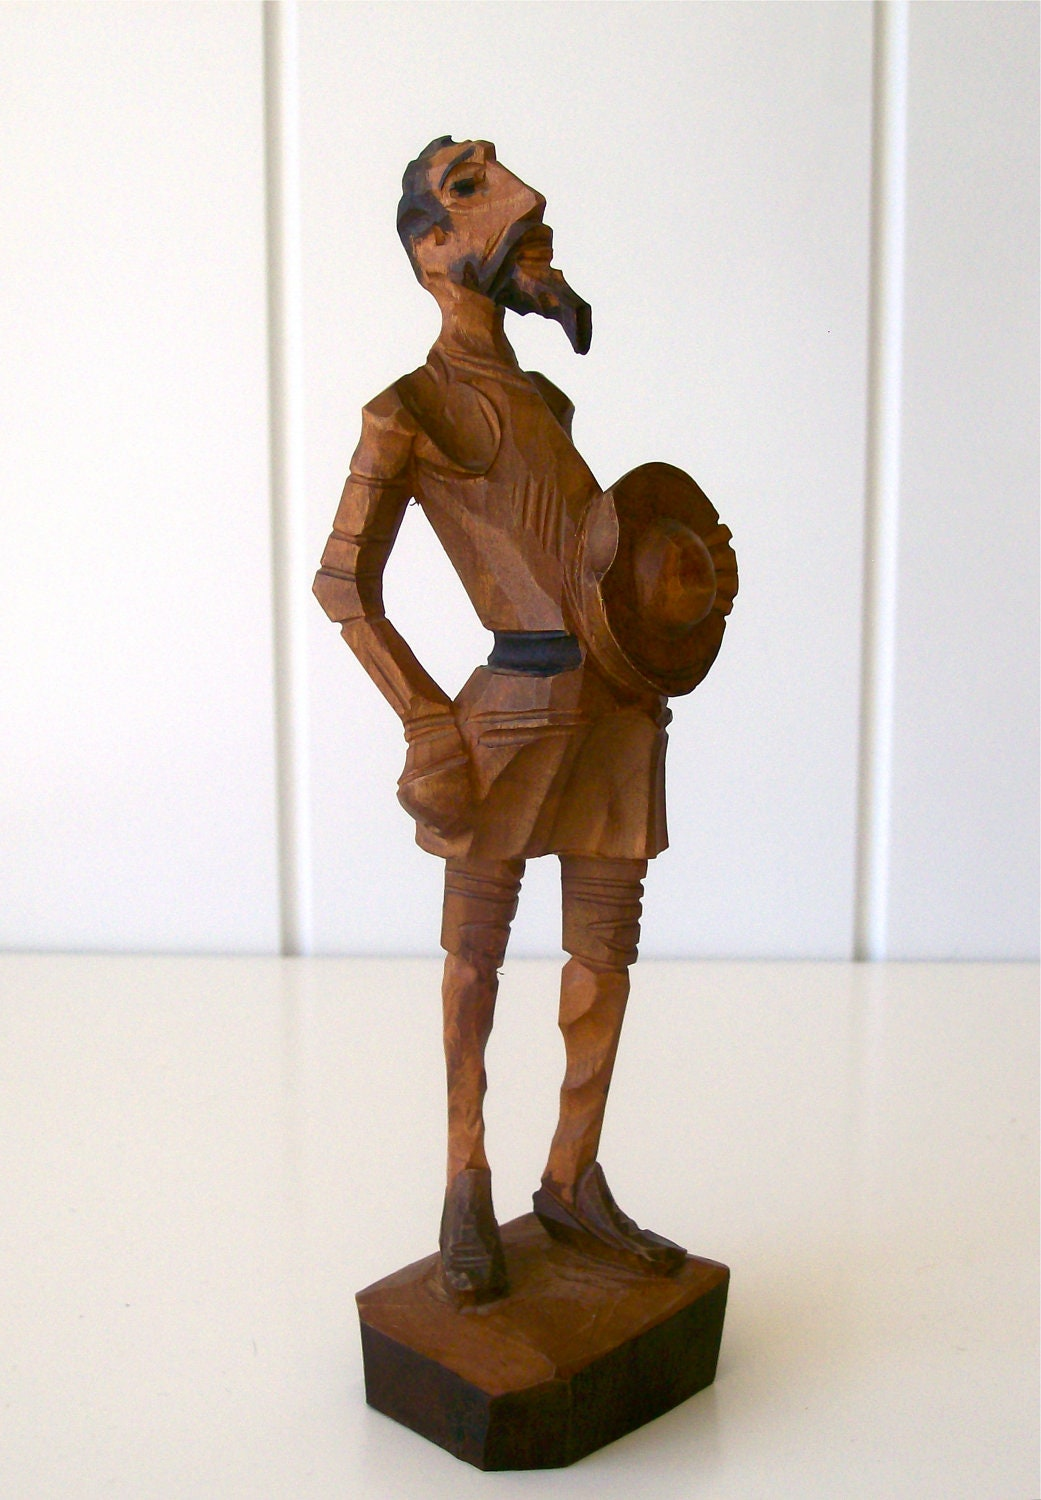 Woodworking don quixote wood carving PDF Free Download